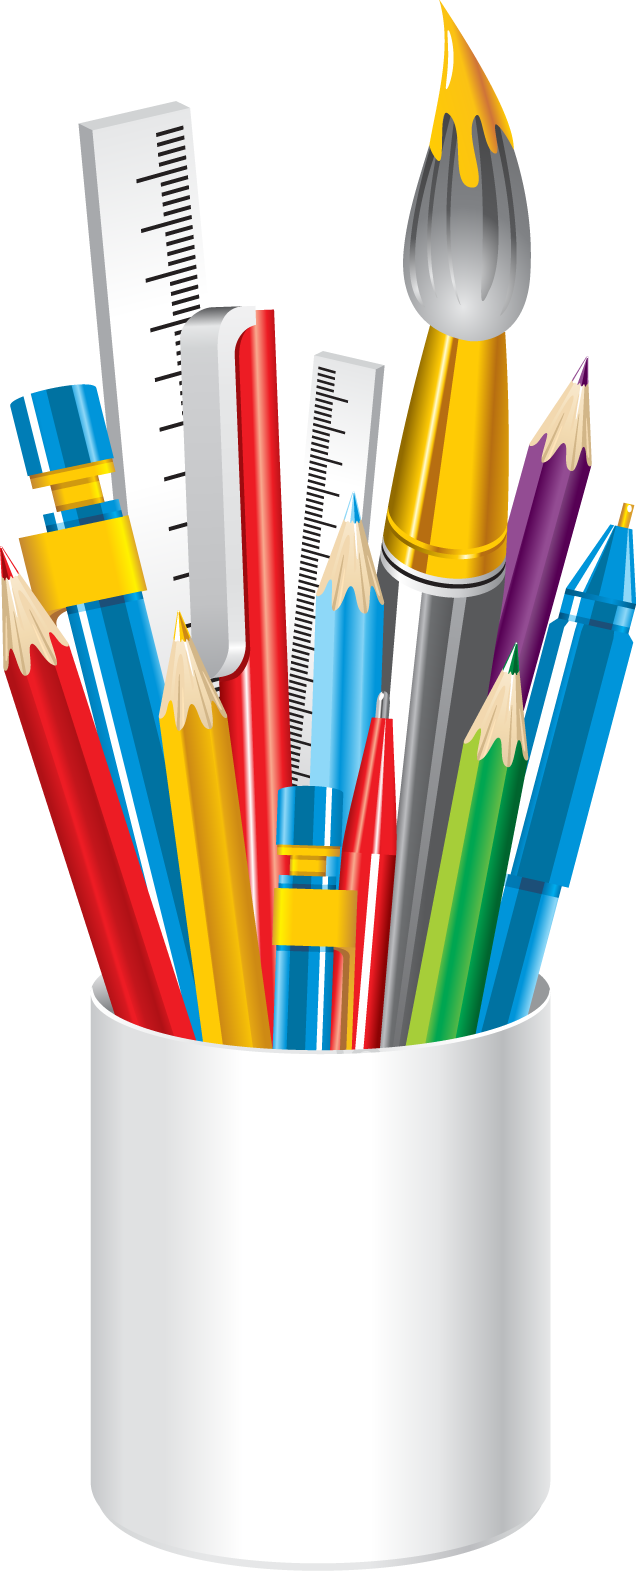 Web design development pinterest. Clipart pencil art supply